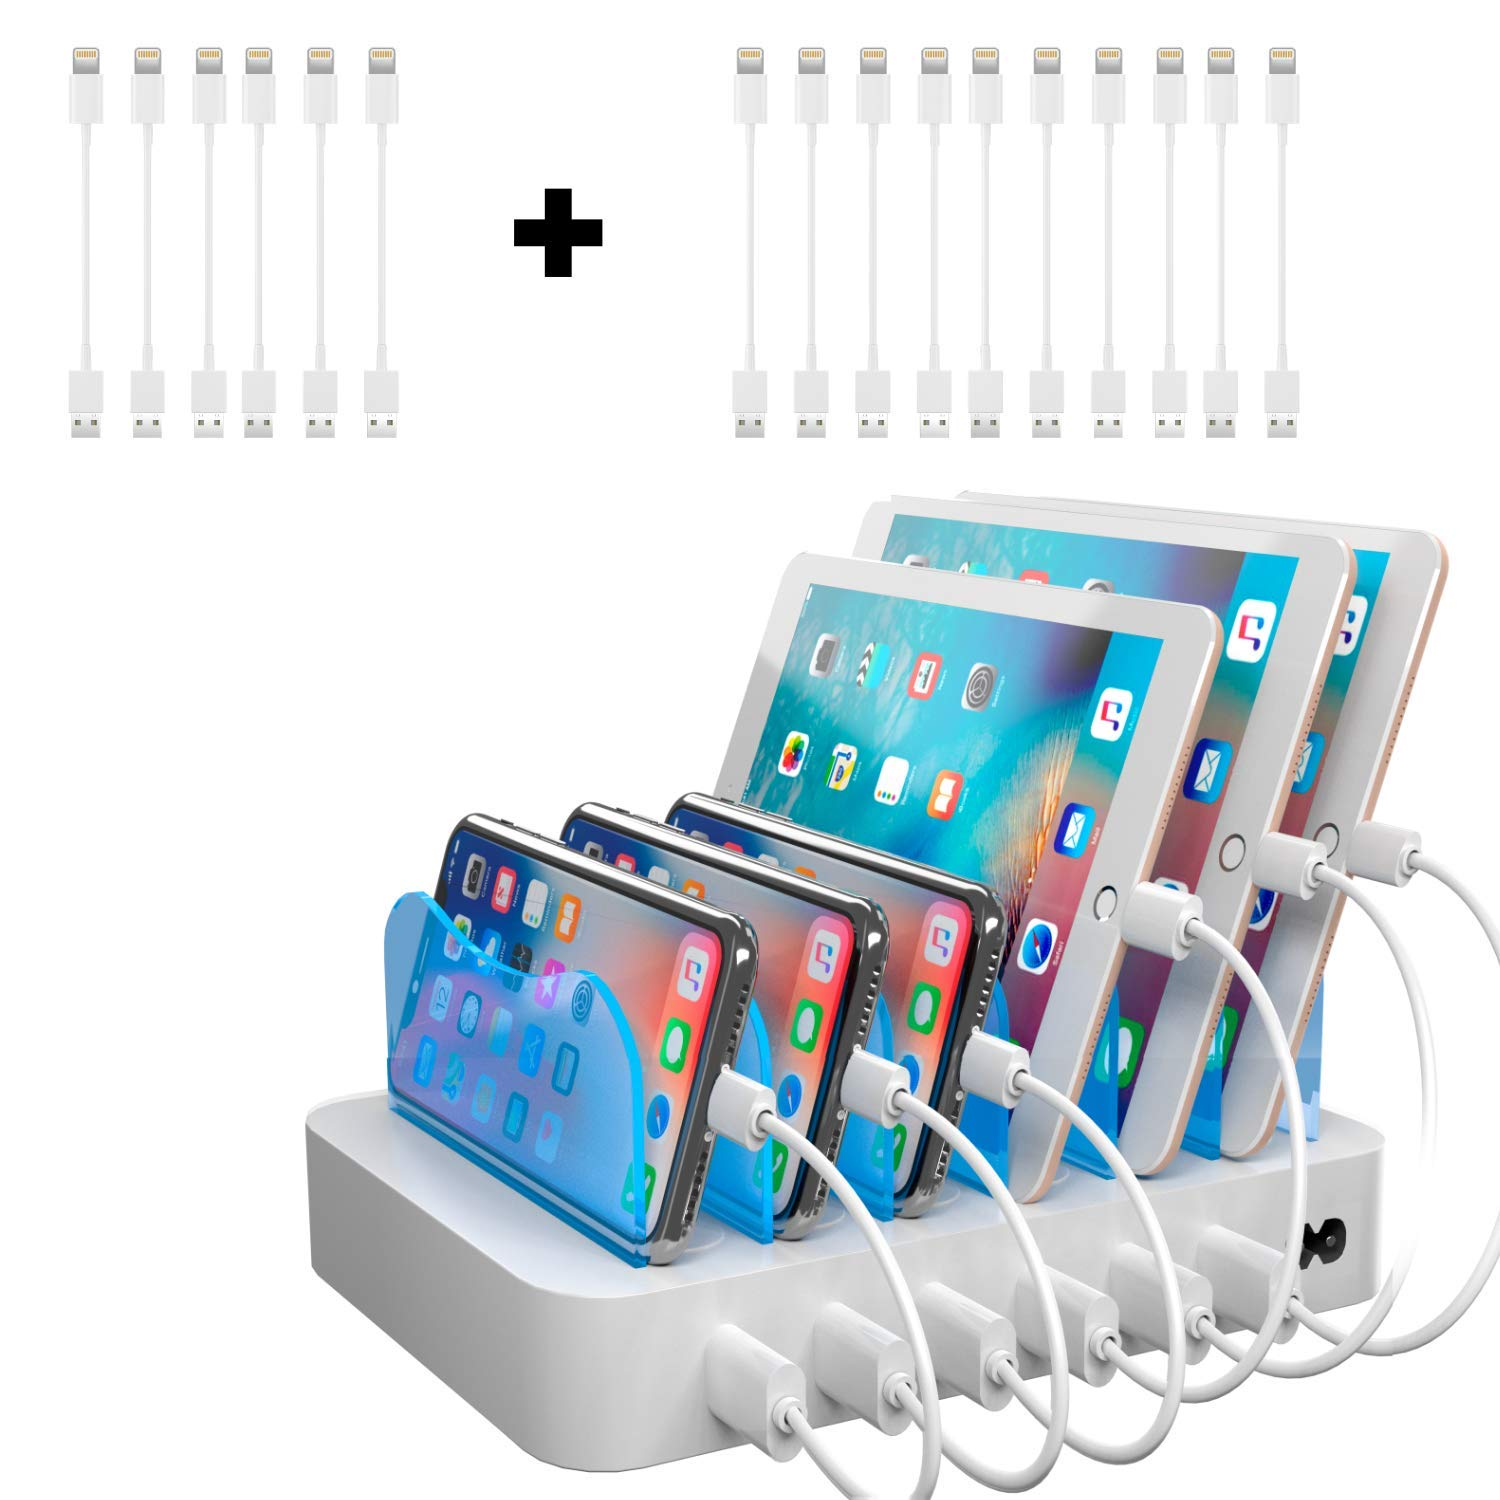 Hercules Tuff USB Charging Station for Multiple Devices for Los Products - 16 Short Cables - 5V/2A 50W (ETL Certified) by Hercules Tuff